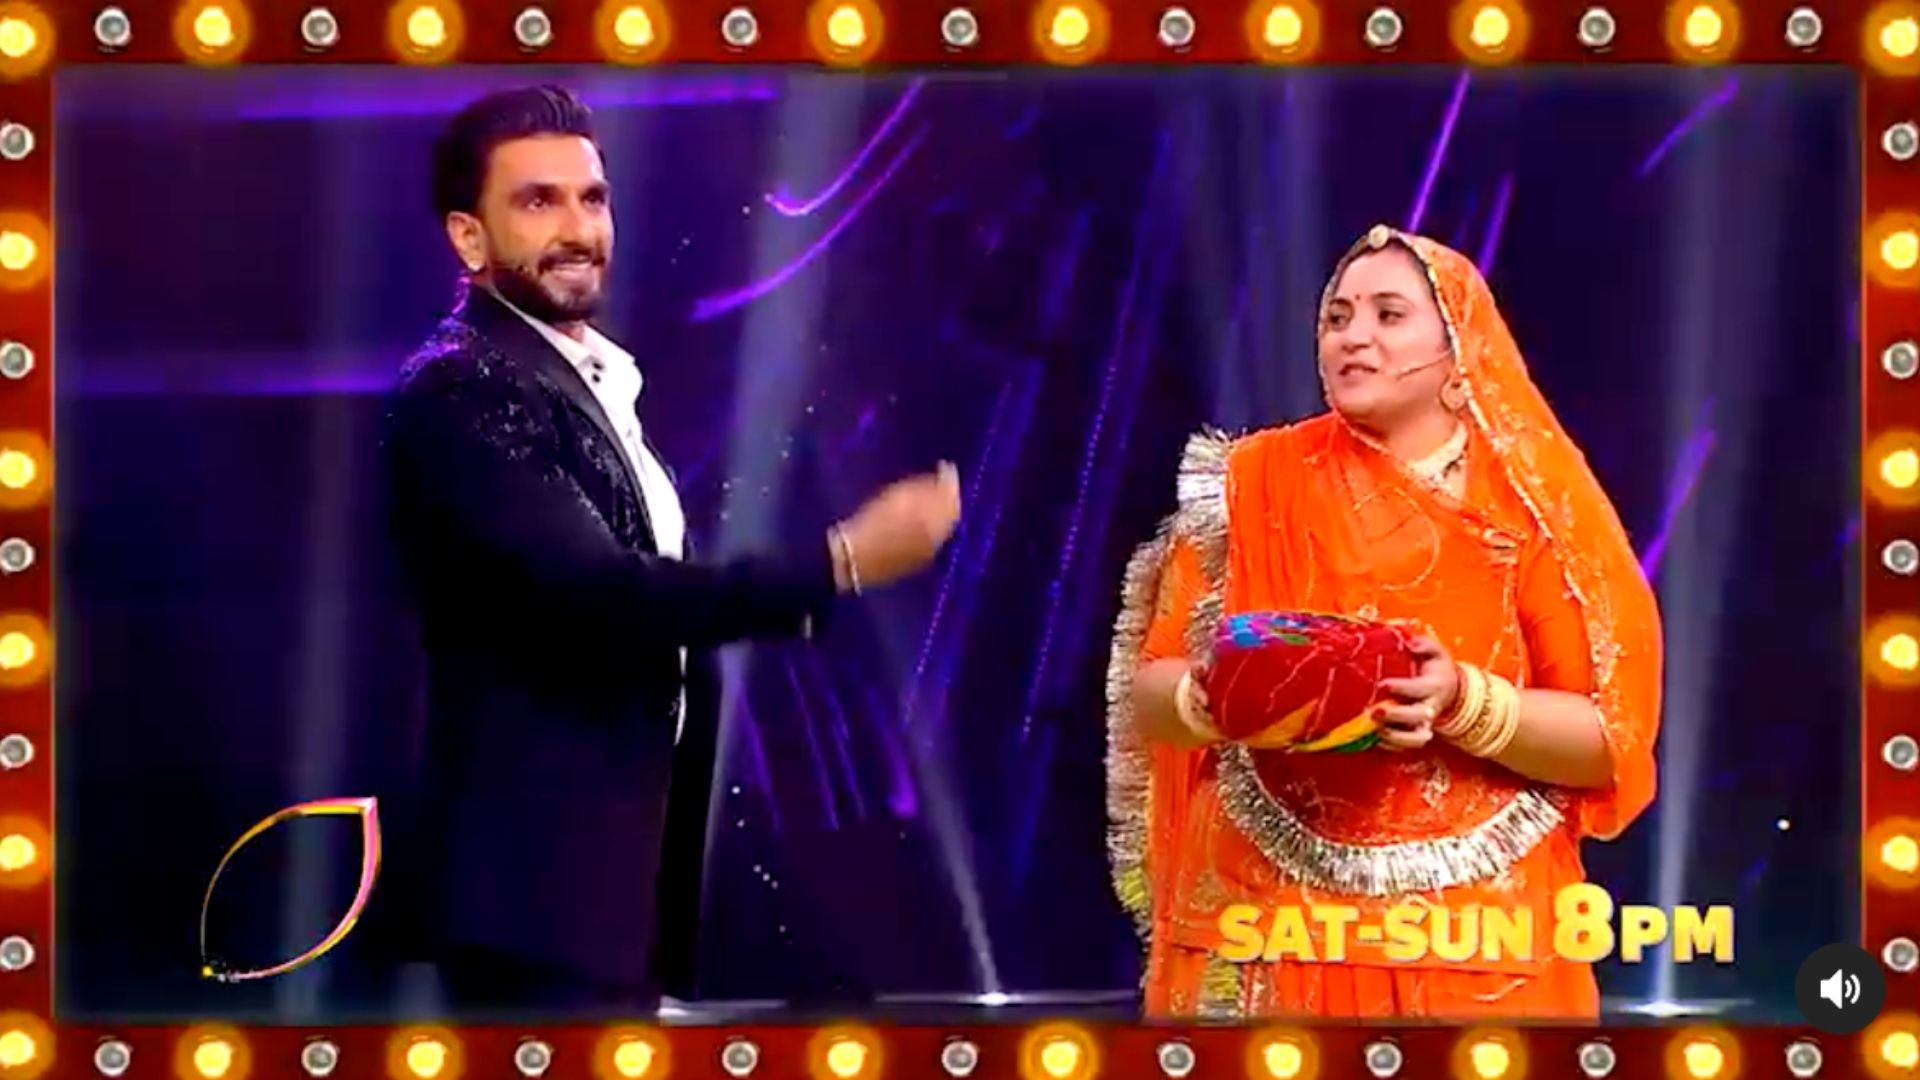 The Big Picture: Ranveer Singh Grooves In A Three Piece Suit On Deepika Padukone's Traditional Song With A Contestant